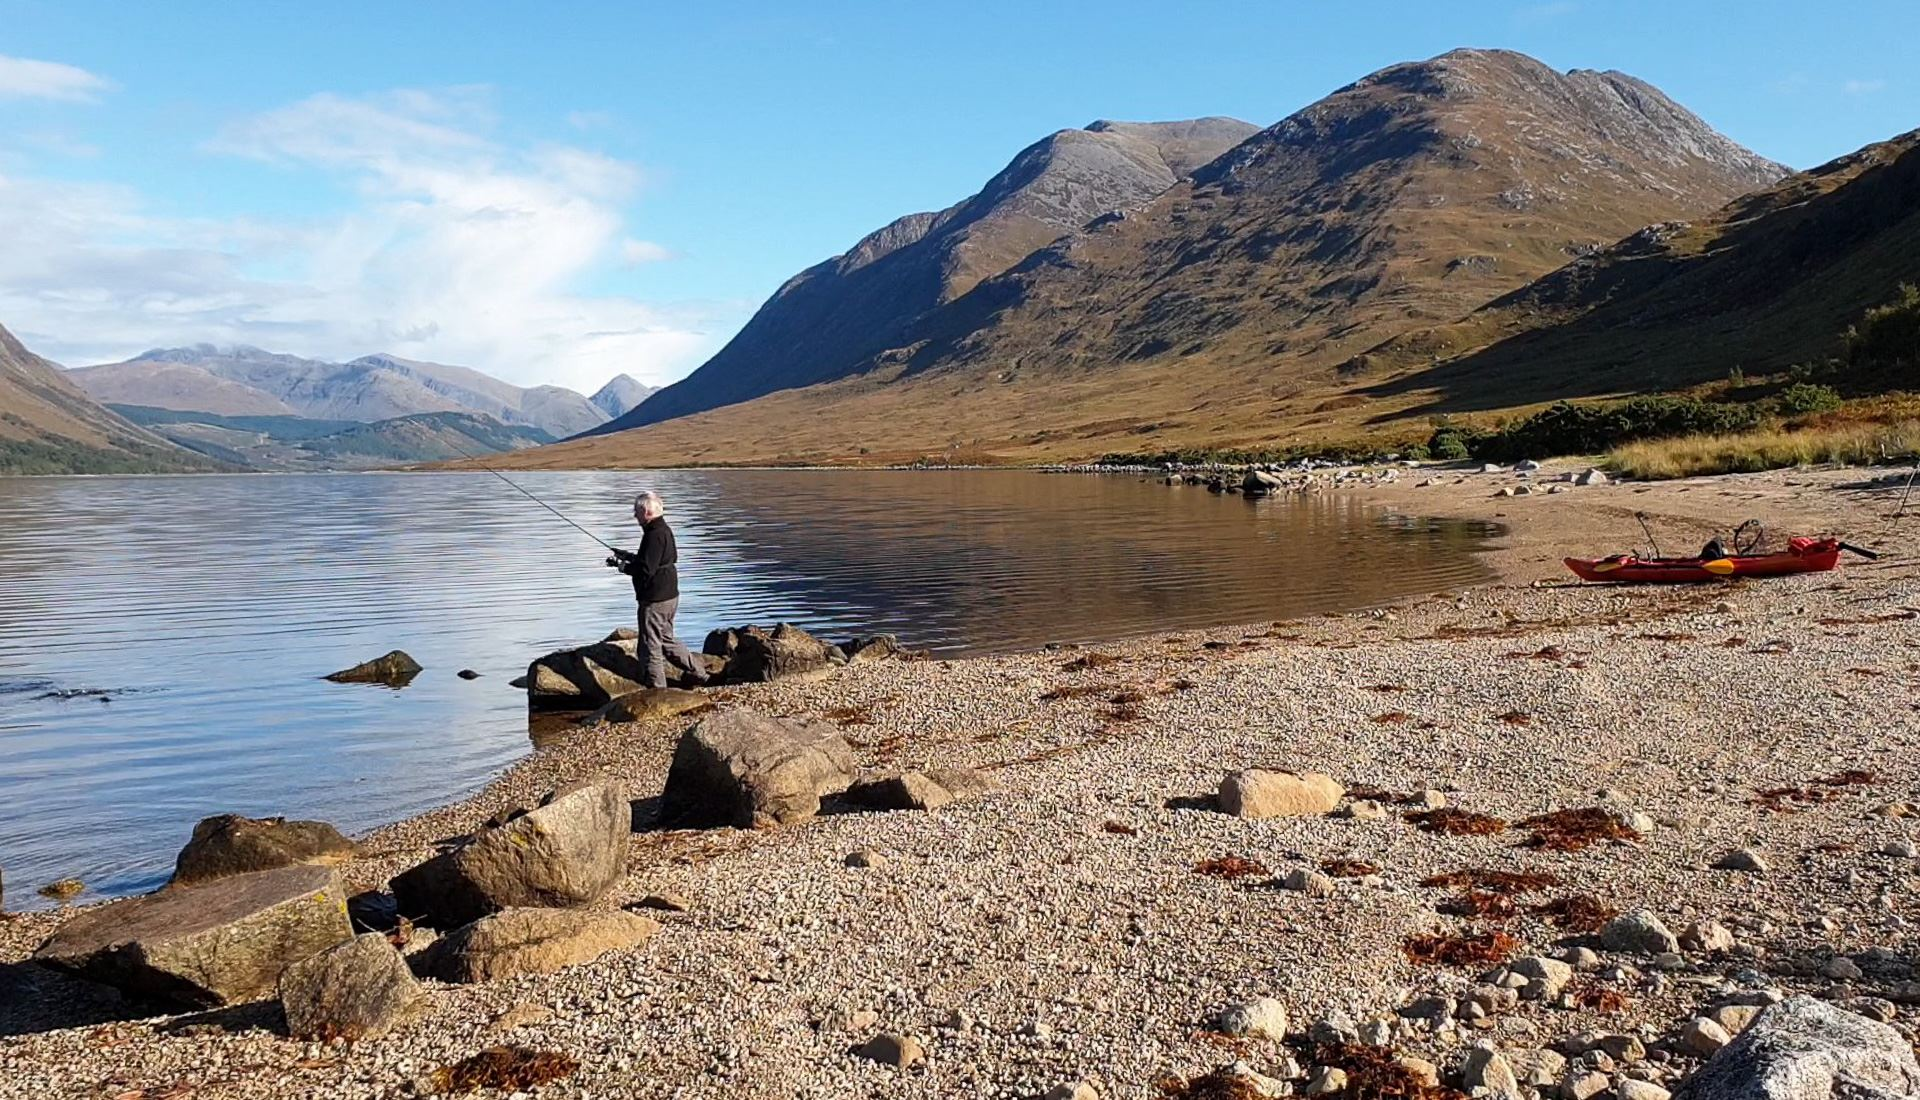 Spinning for brown trout in Loch Etive